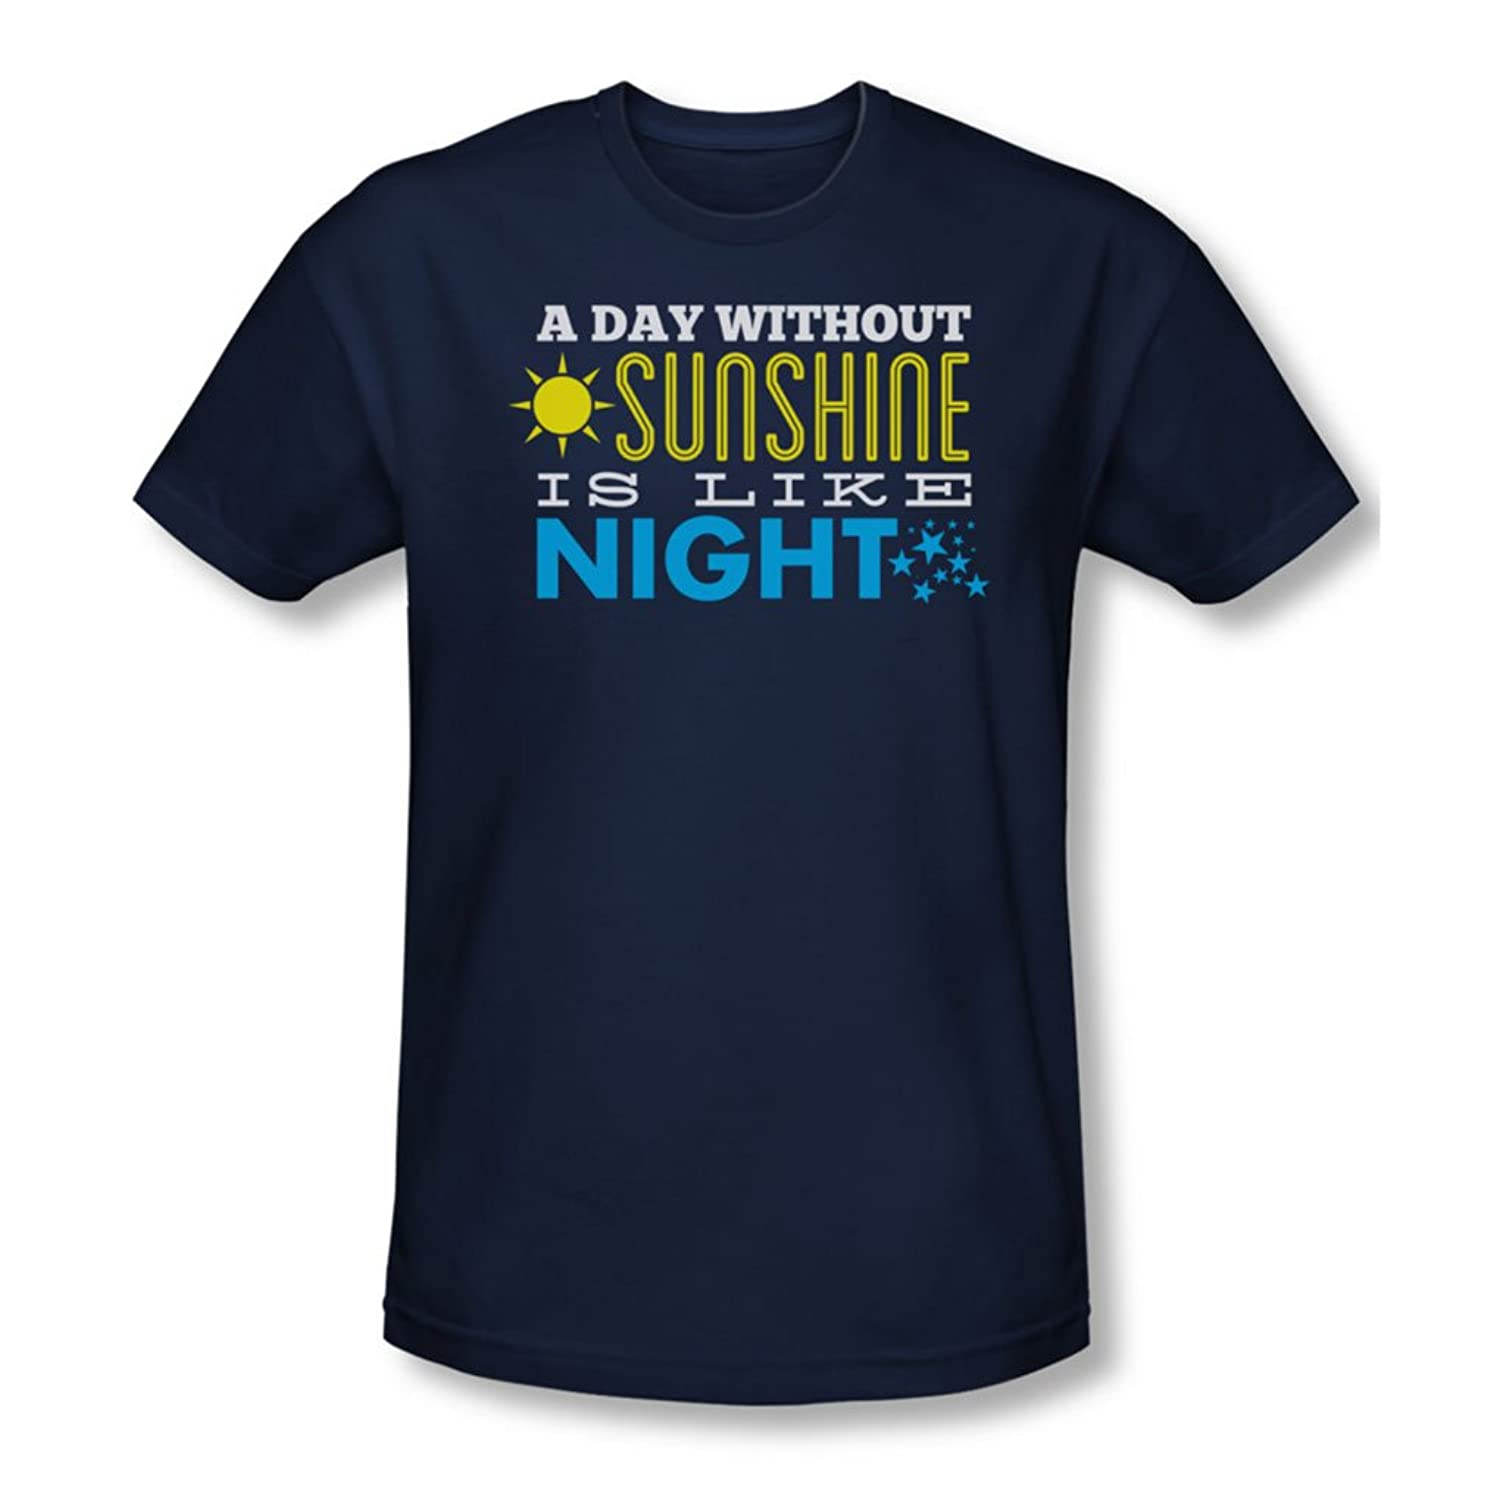 Sunshine - Mens Slim Fit T-Shirt In Navy, X-Large, Navy